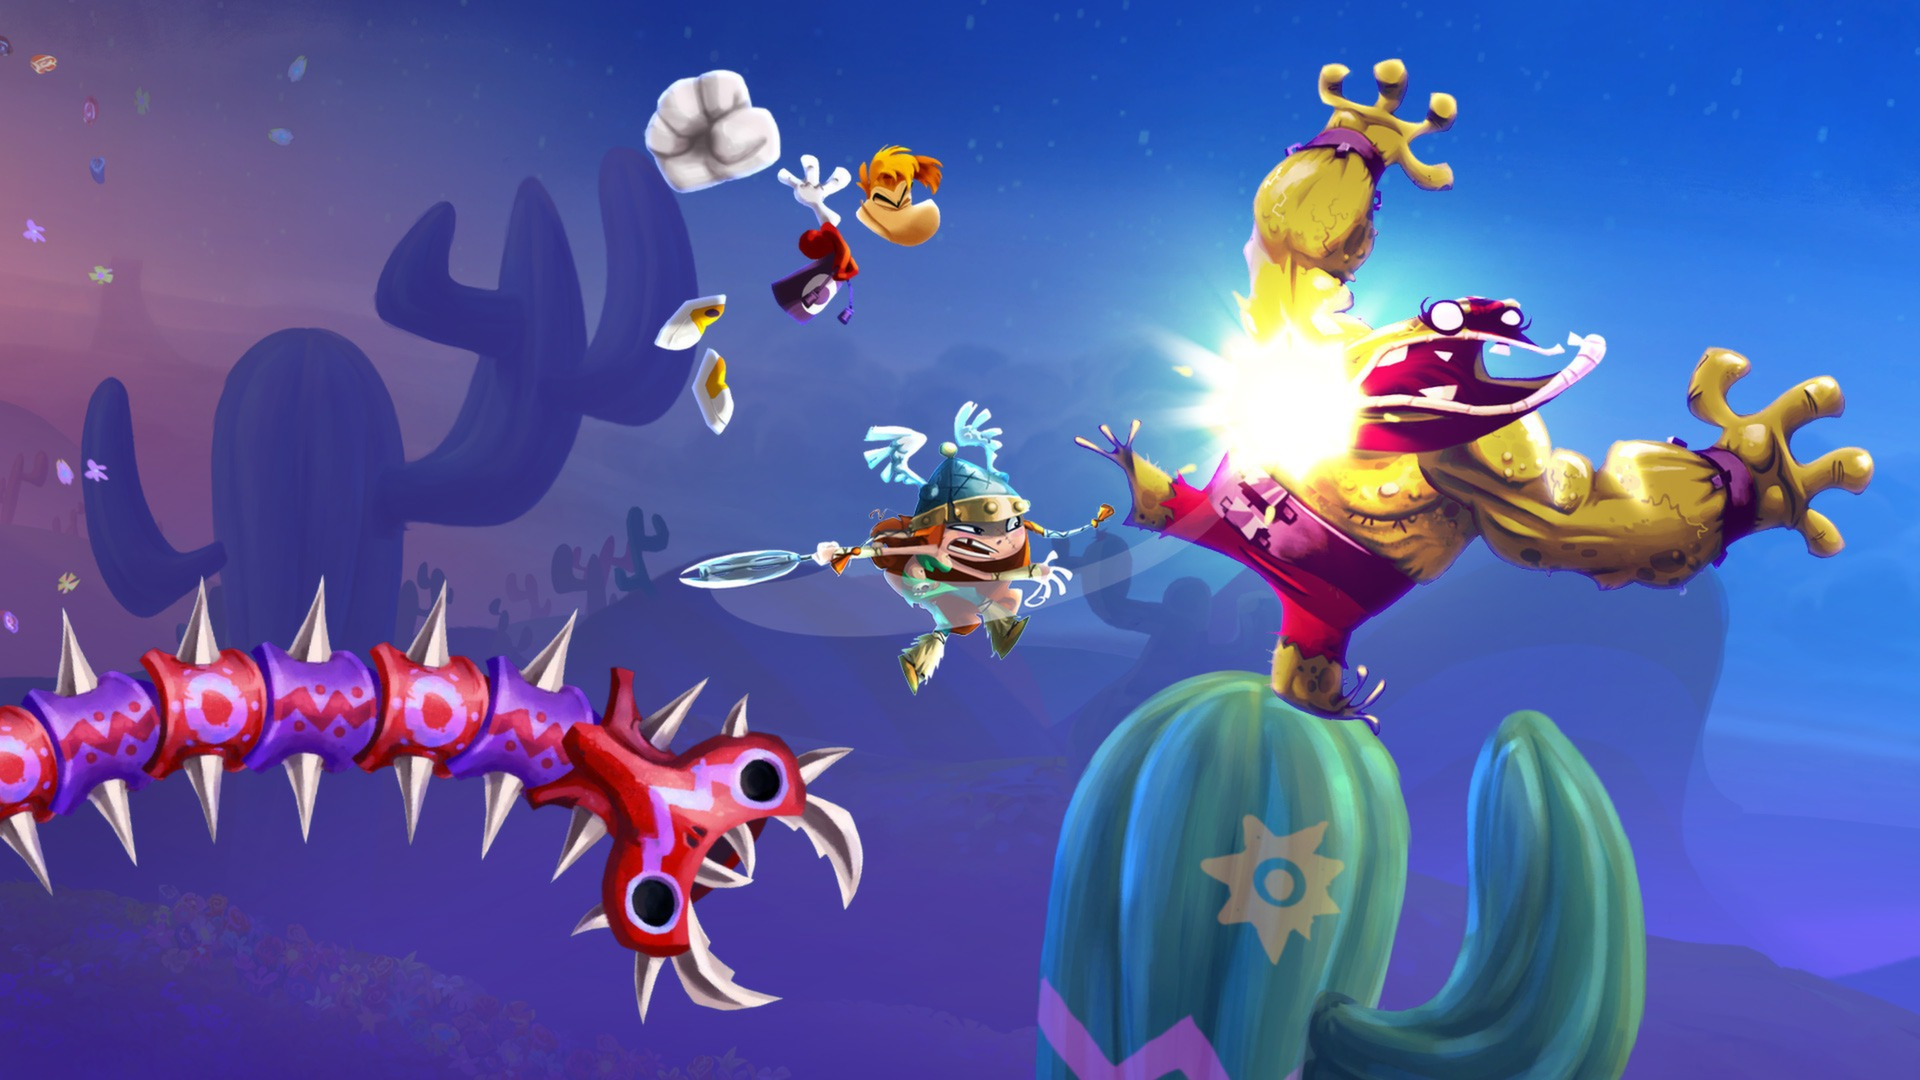 Claim Rayman Legends for free